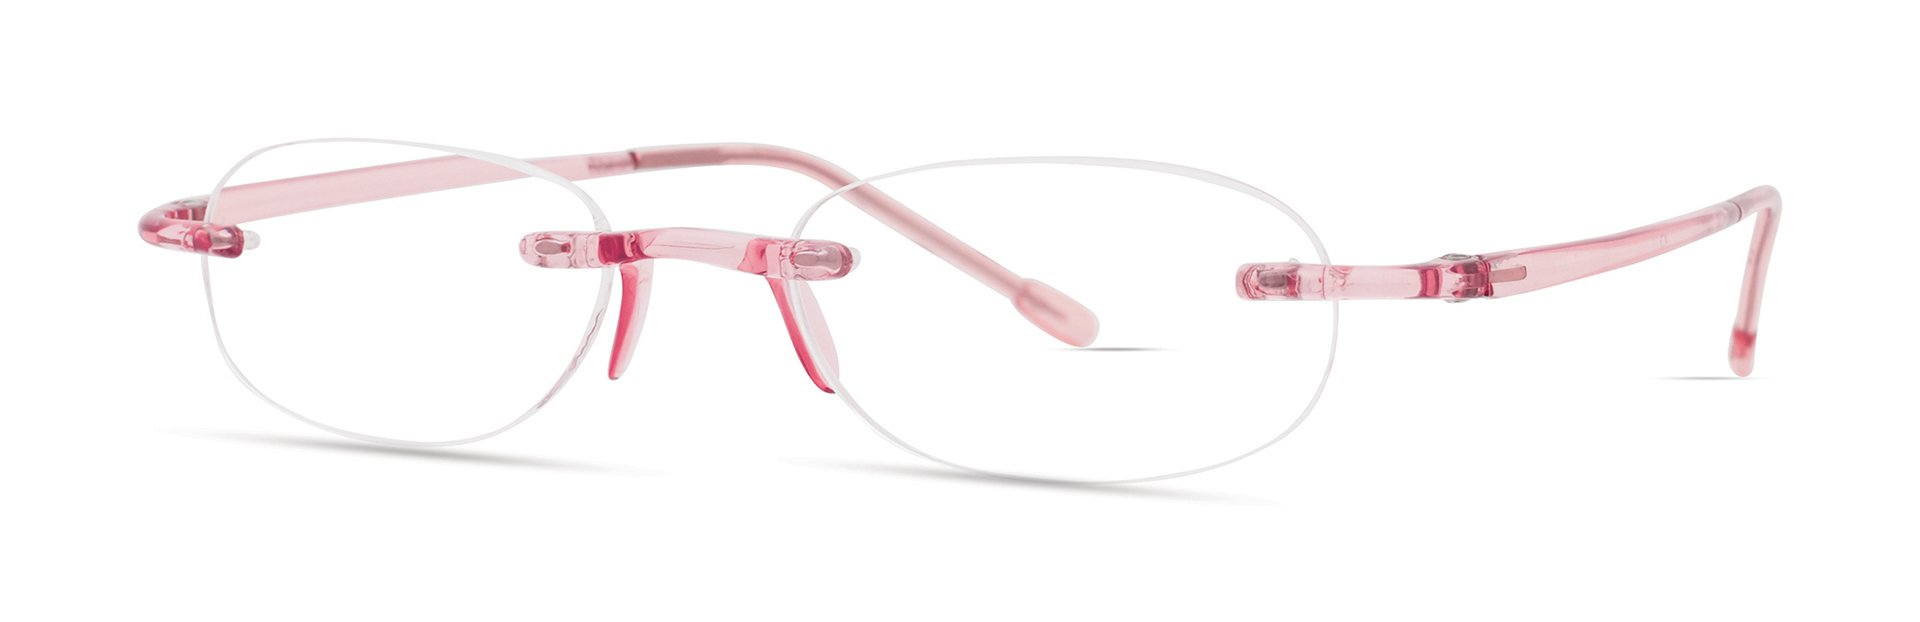 Gels Reading Glasses - Scojo New York by Scojo New York